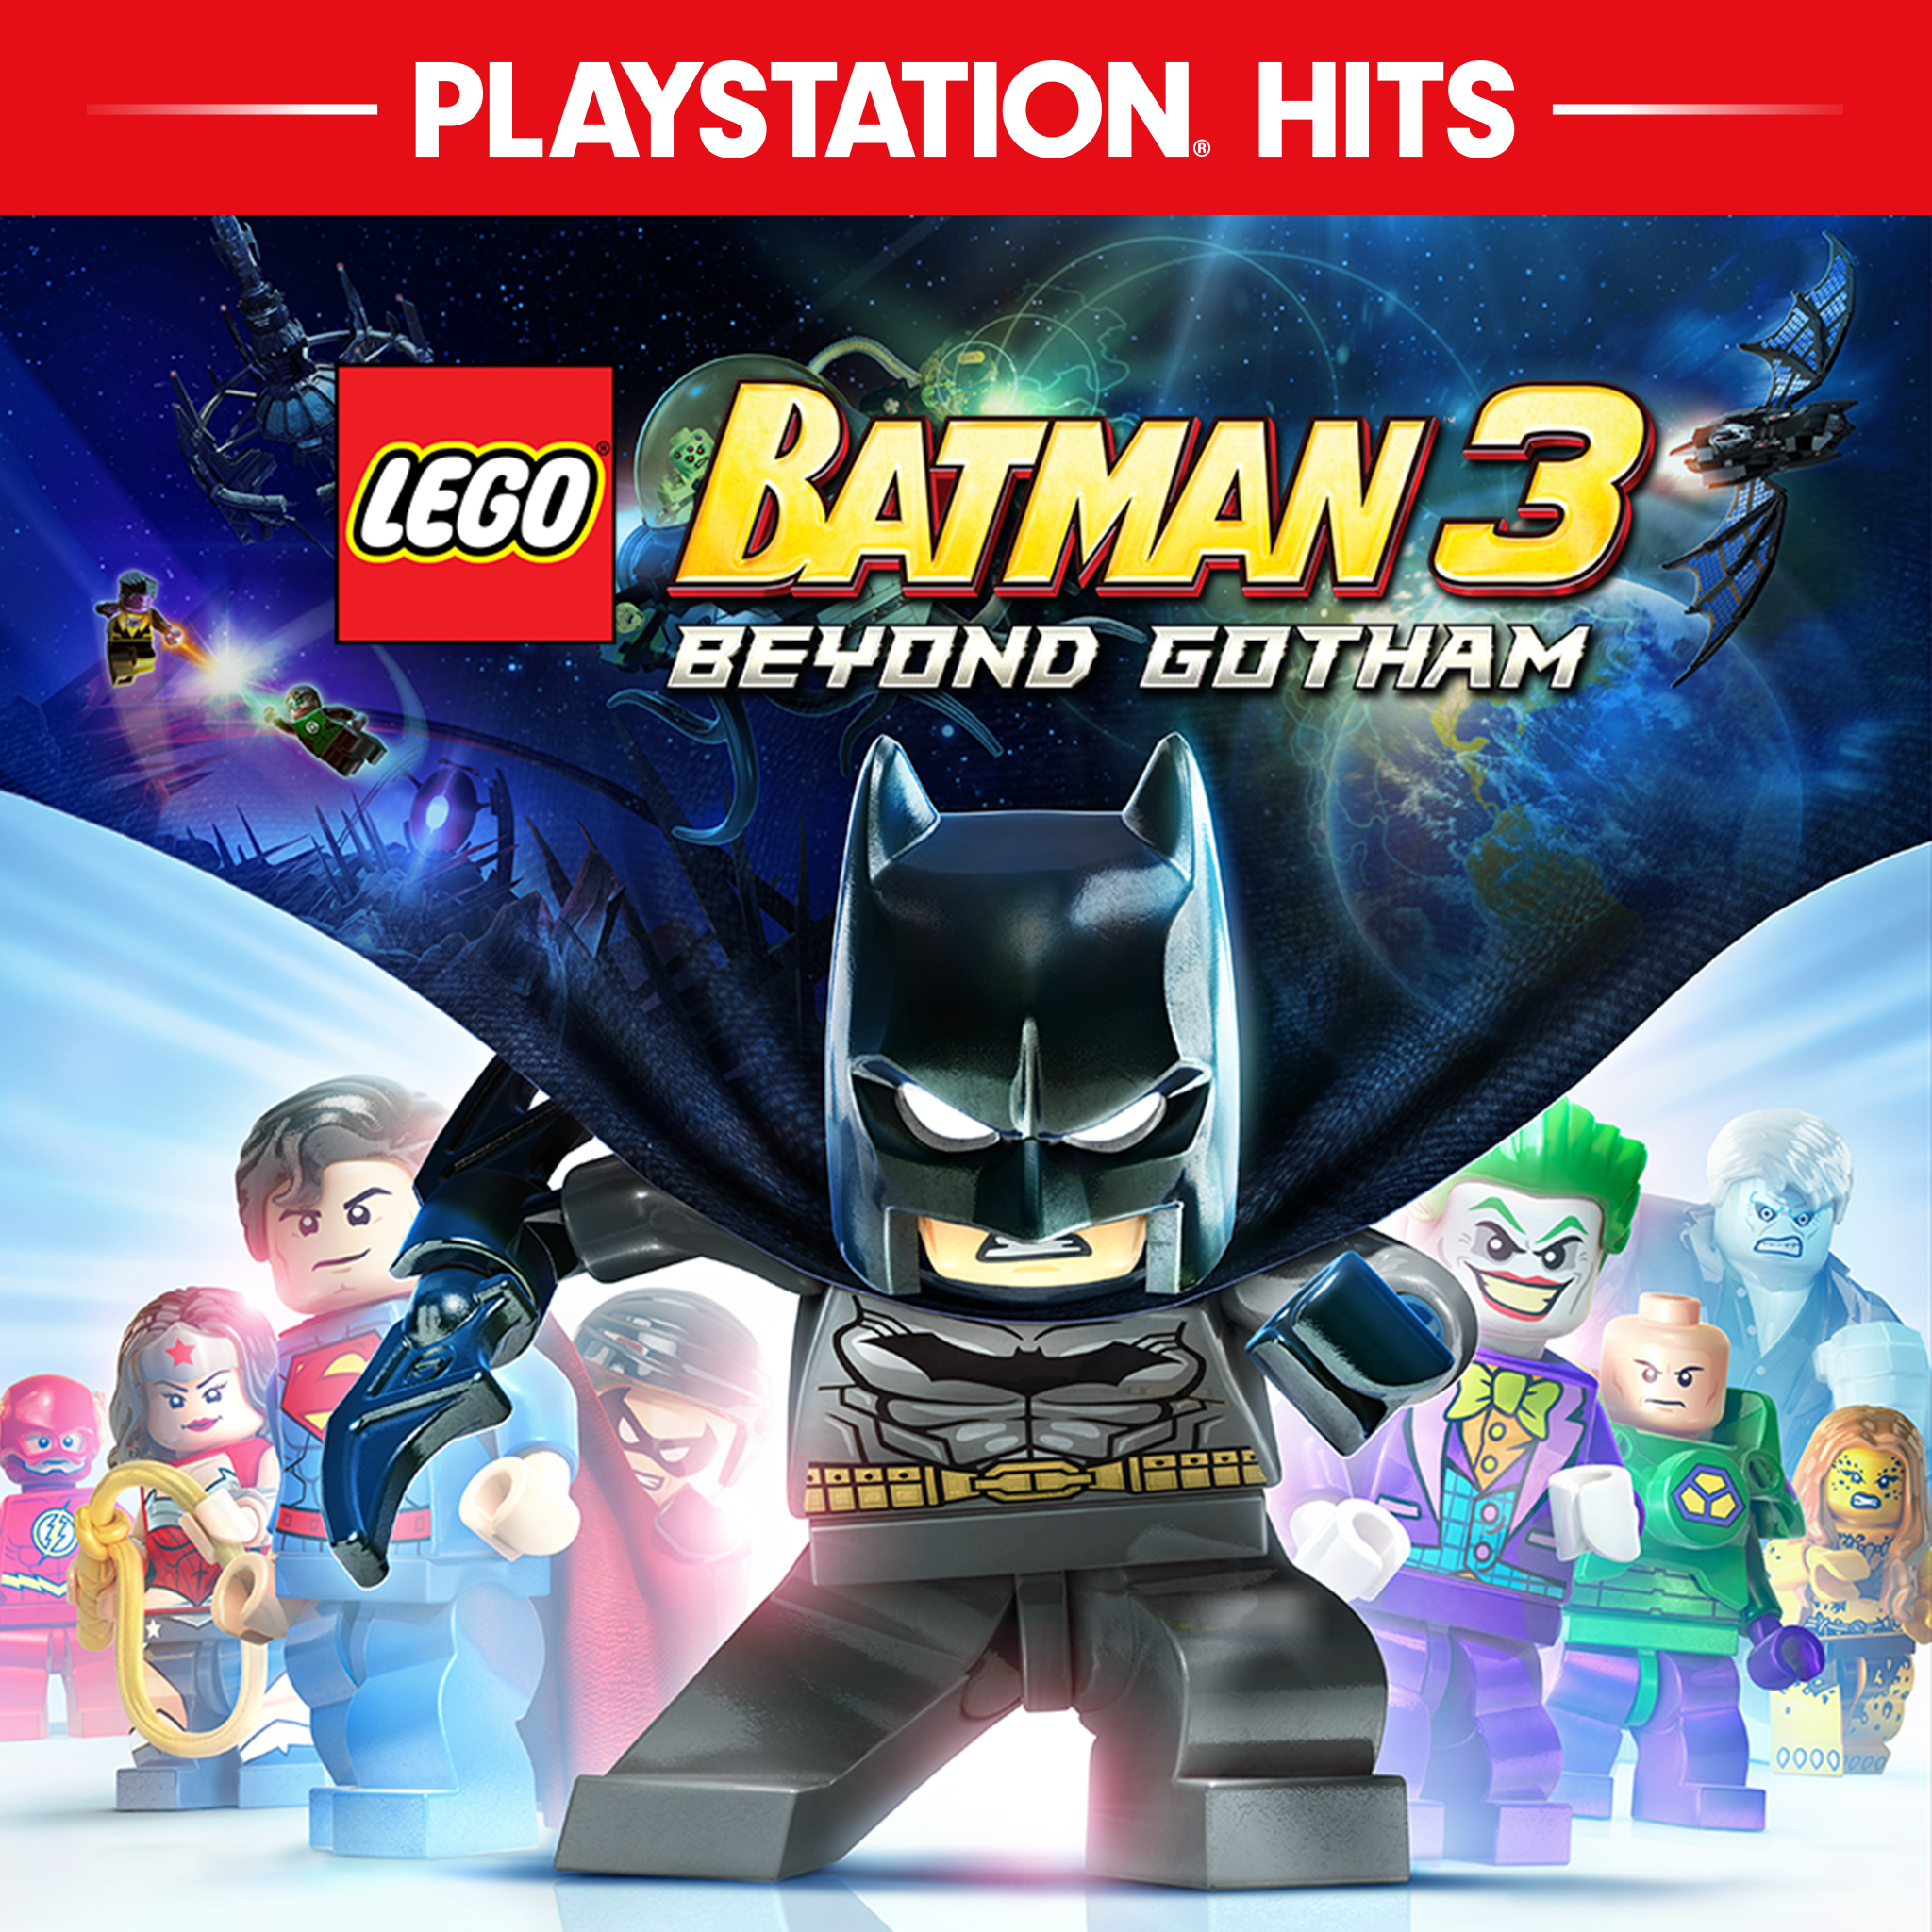 LEGO® BATMAN™ 3: GOTHAM'IN ÖTESİ